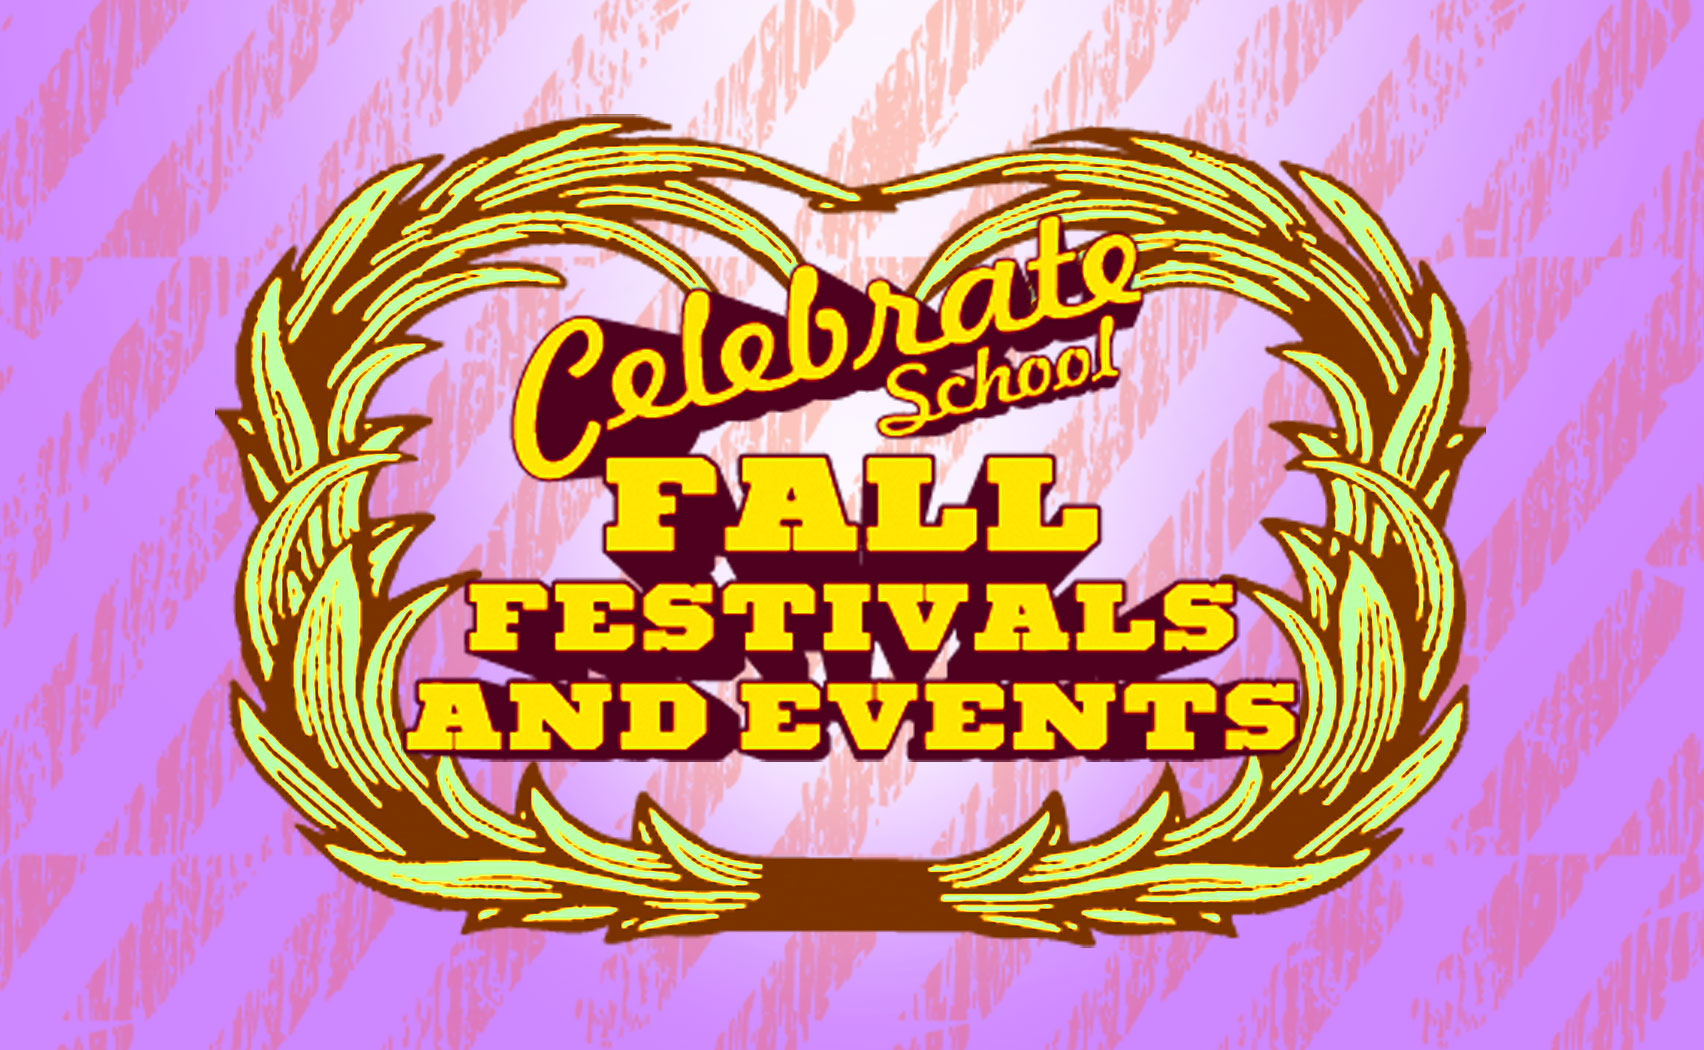 Celebrate School Fall Festivals and Events with These Shirt Design Ideas